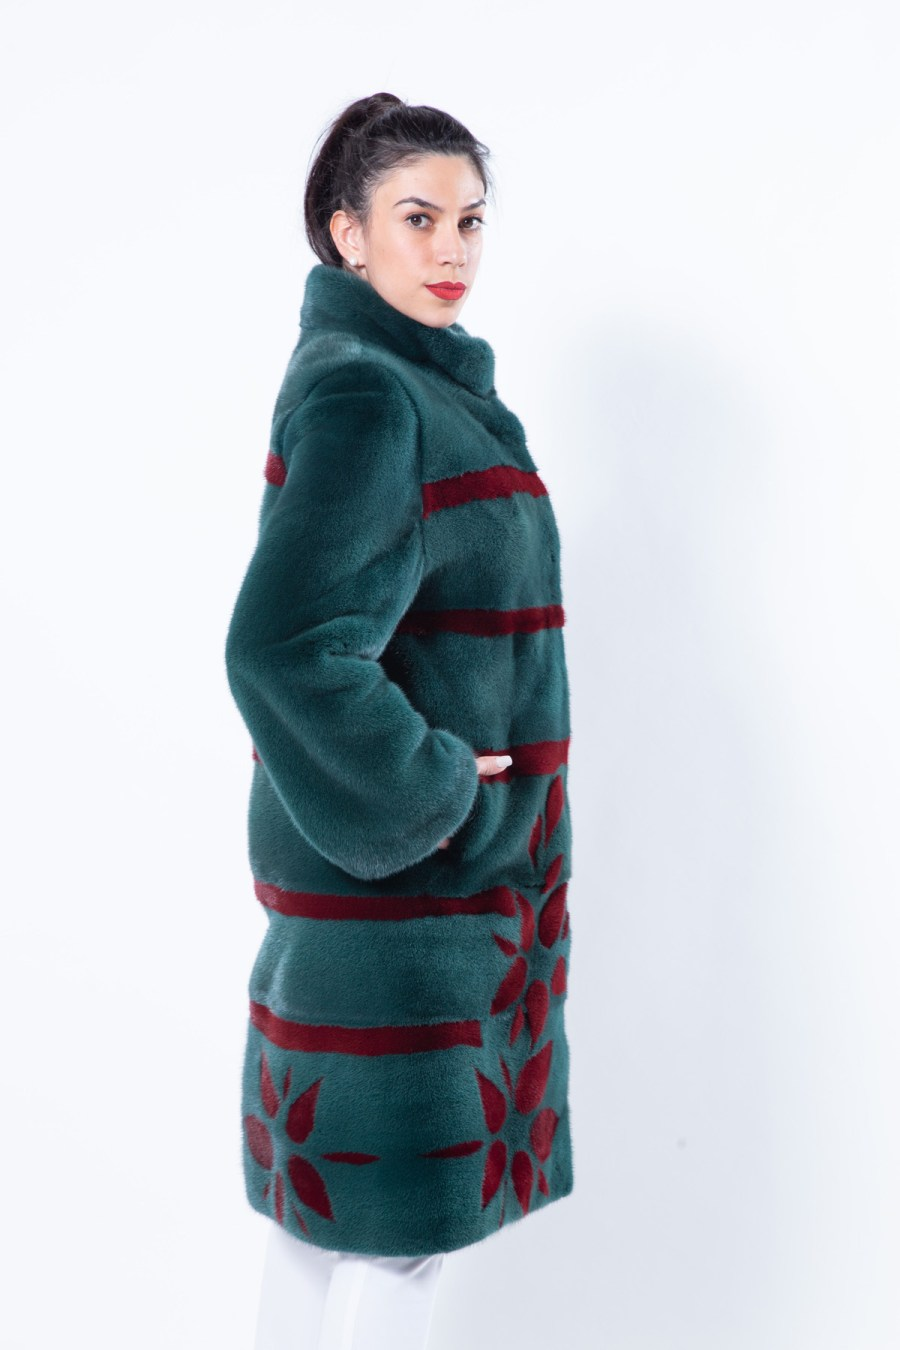 Shock Green Mink Jacket with Stripes and Flowers | Sarigianni Furs